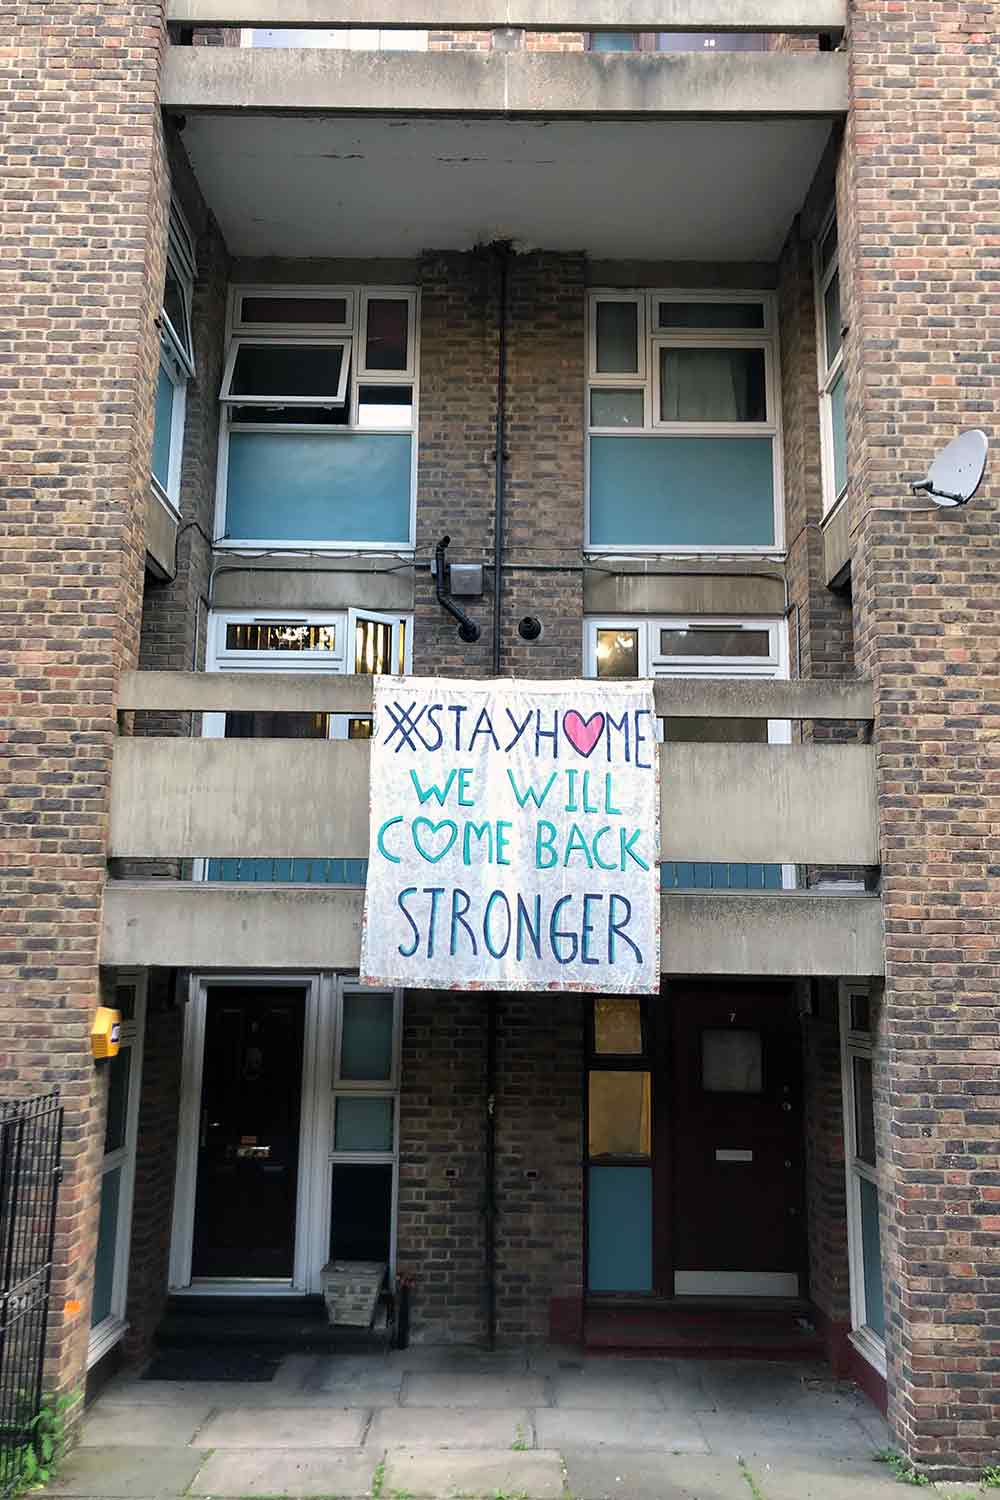 Sign hung on building saying 'Stay Home, We Will Come Back Stronger'